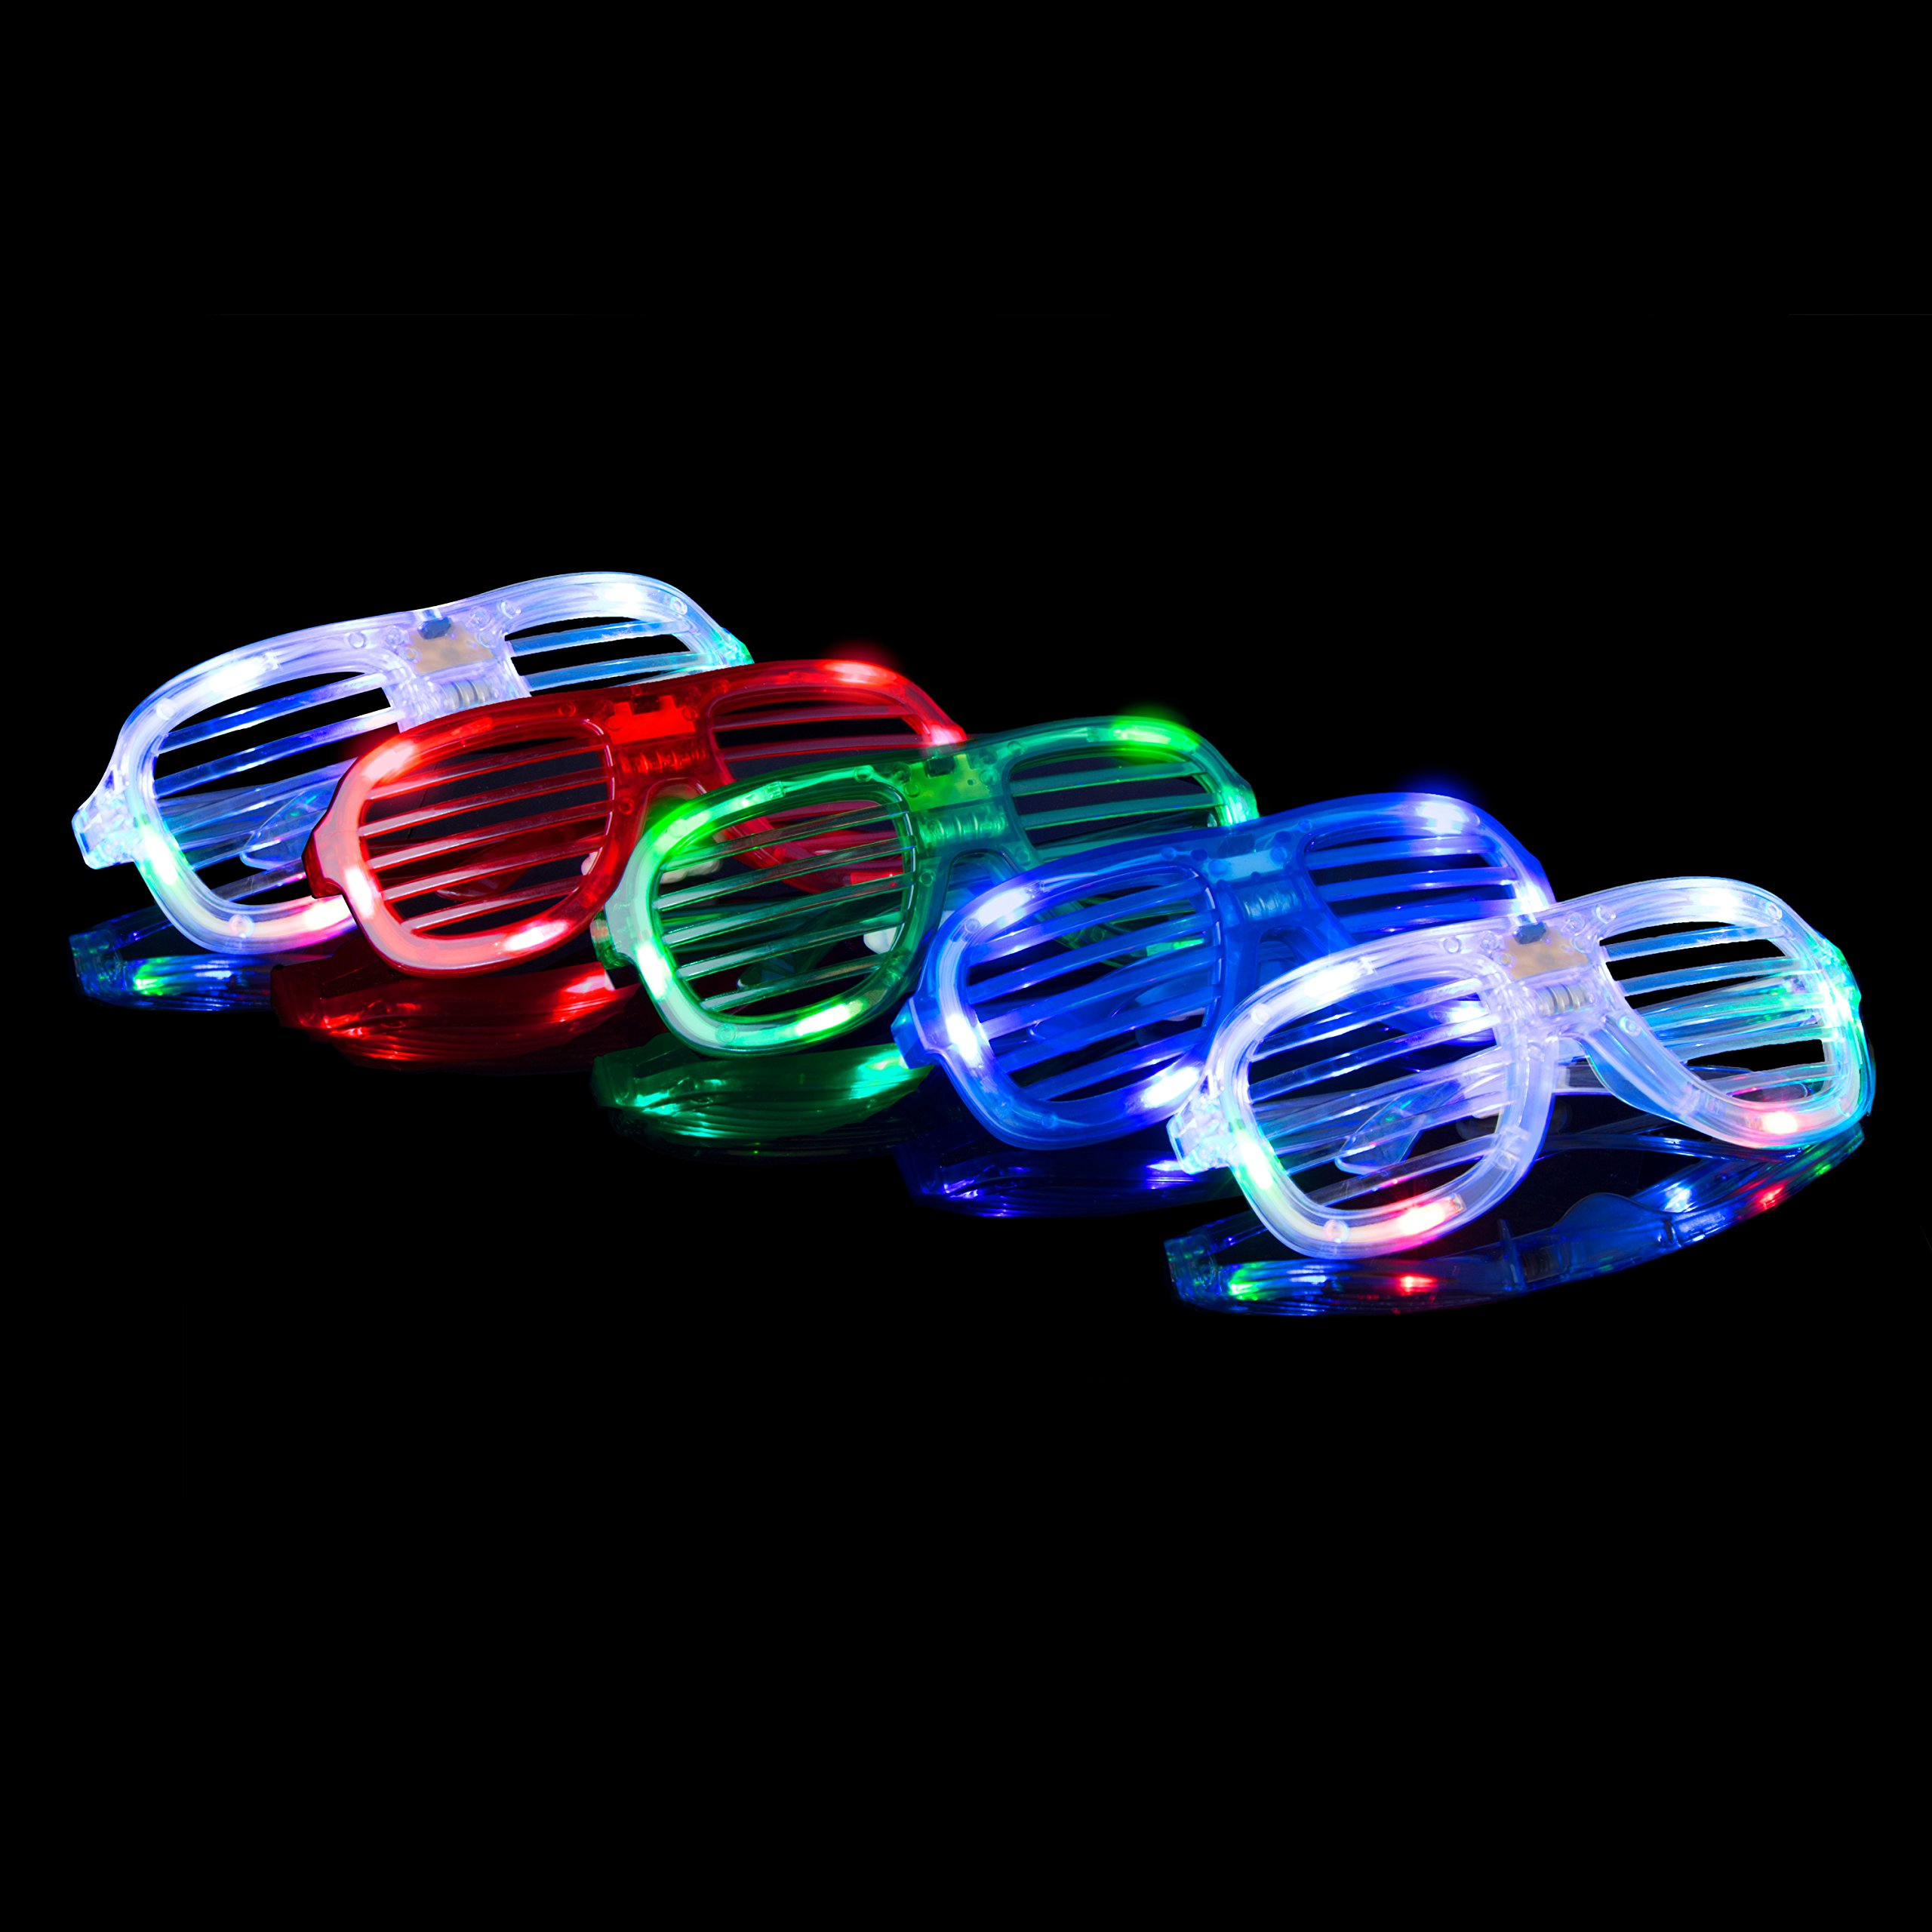 LED Glow Party Favors Party Supplies - 50 LED Glow Party Favor for Kids Glow in The Dark Party Supplies 32 Finger Light Up Toys + 13 Glow Rings + 5 Shades by PartySticks (Image #3)